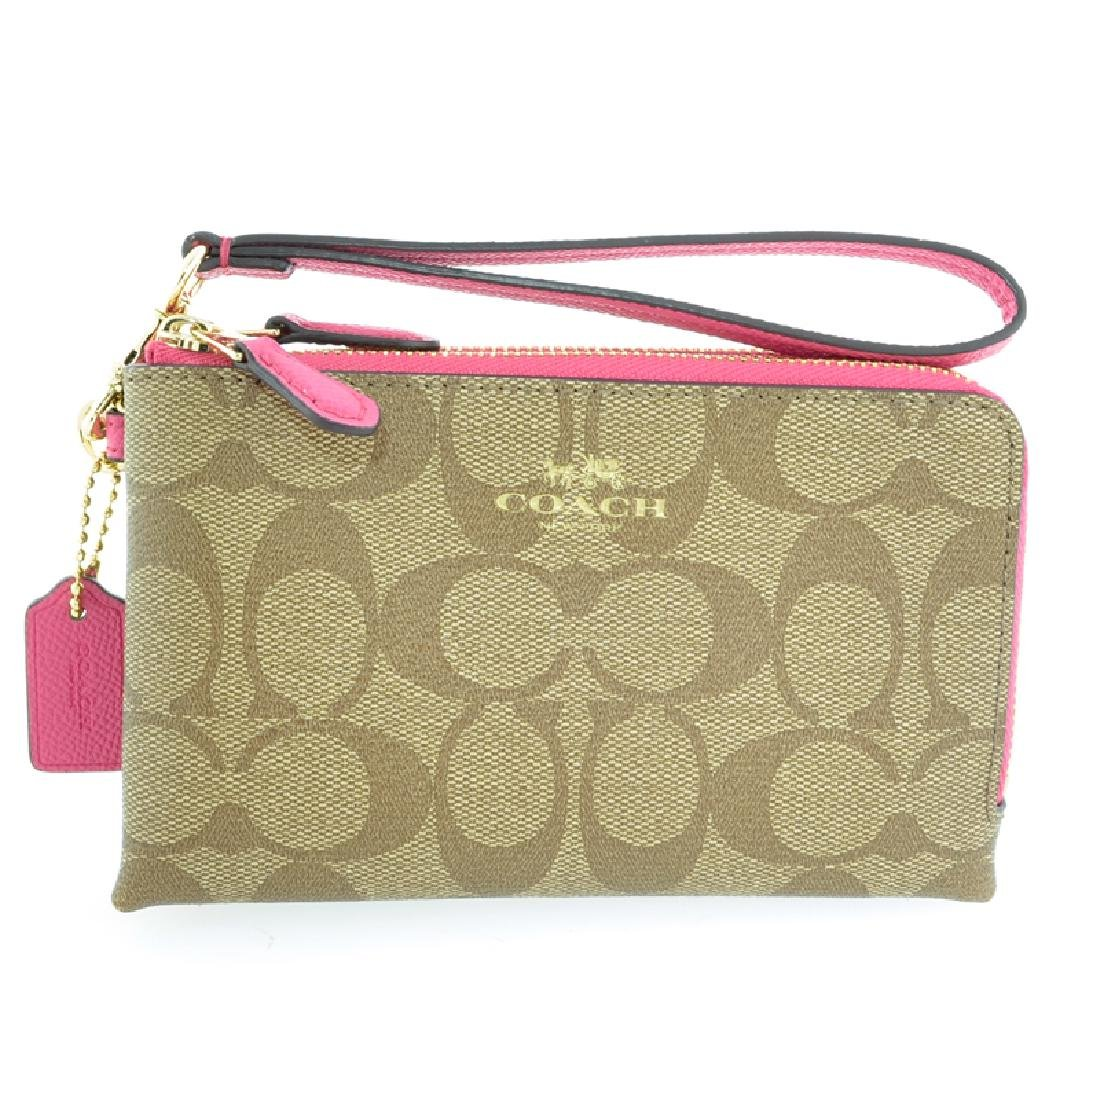 Brand New Authentic Coach Khaki/Dahlia Signature Double